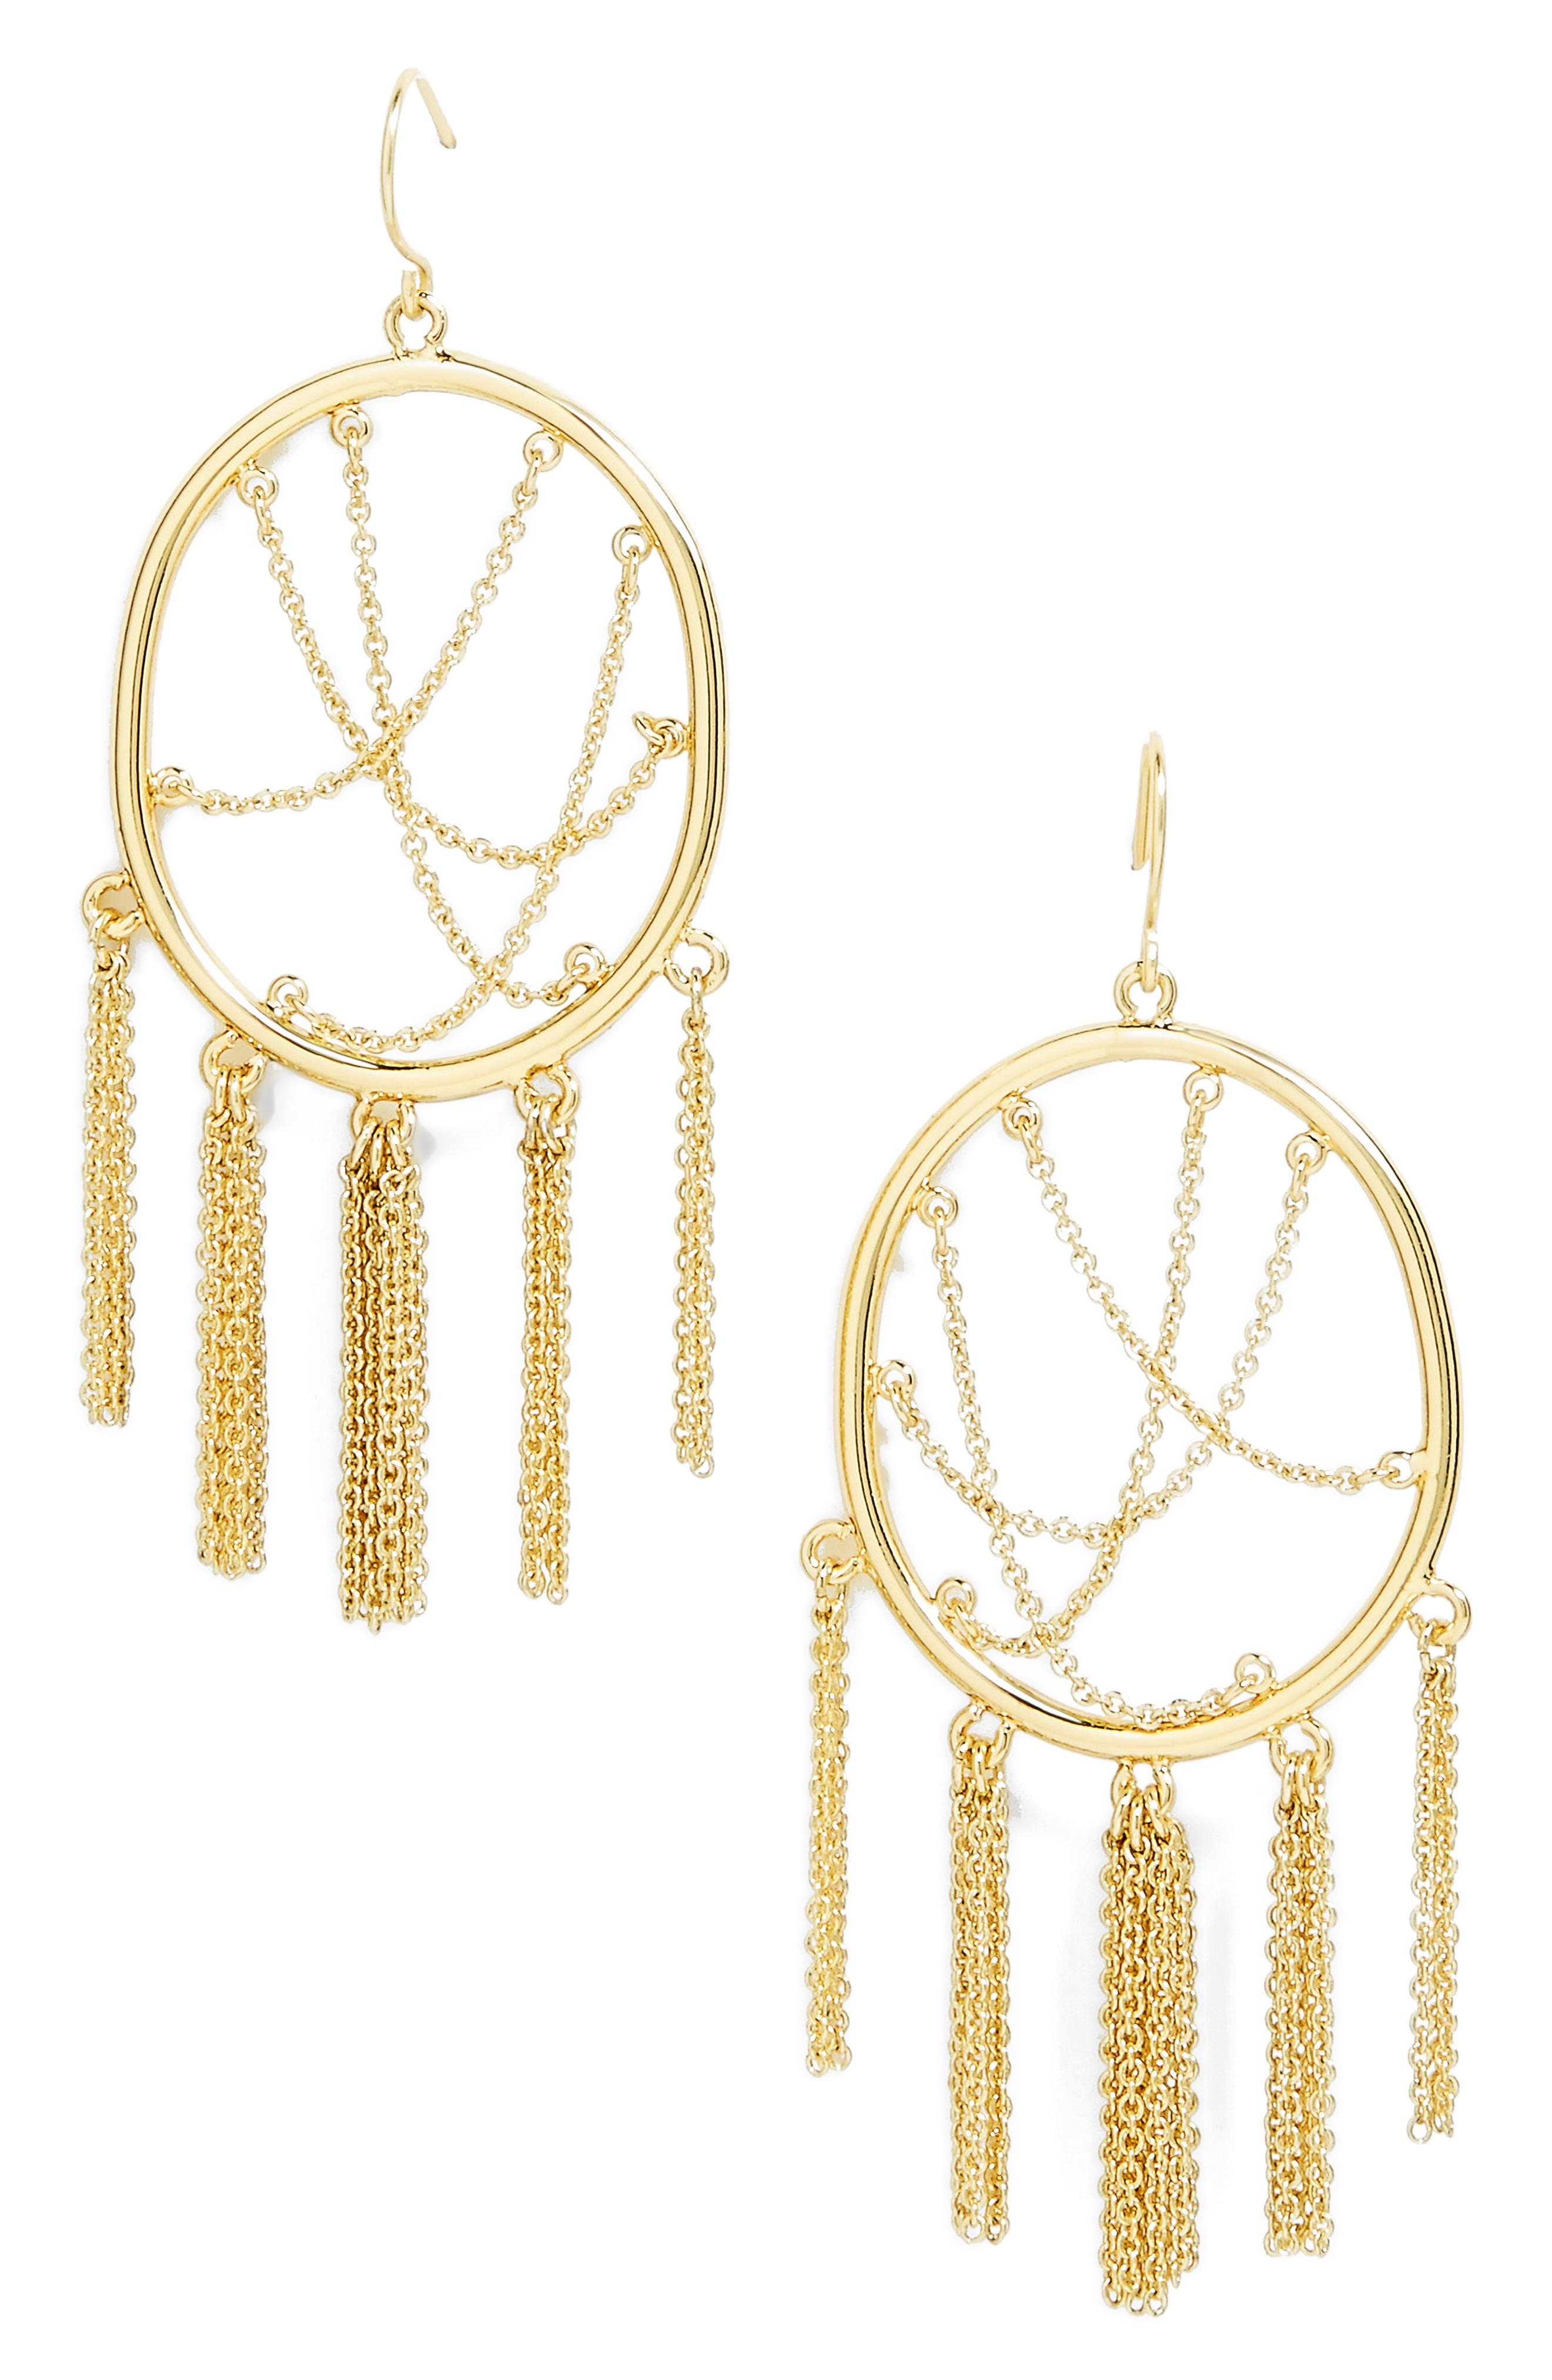 BAUBLEBAR, Allura Drop Earrings, Main thumbnail 1, color, 710